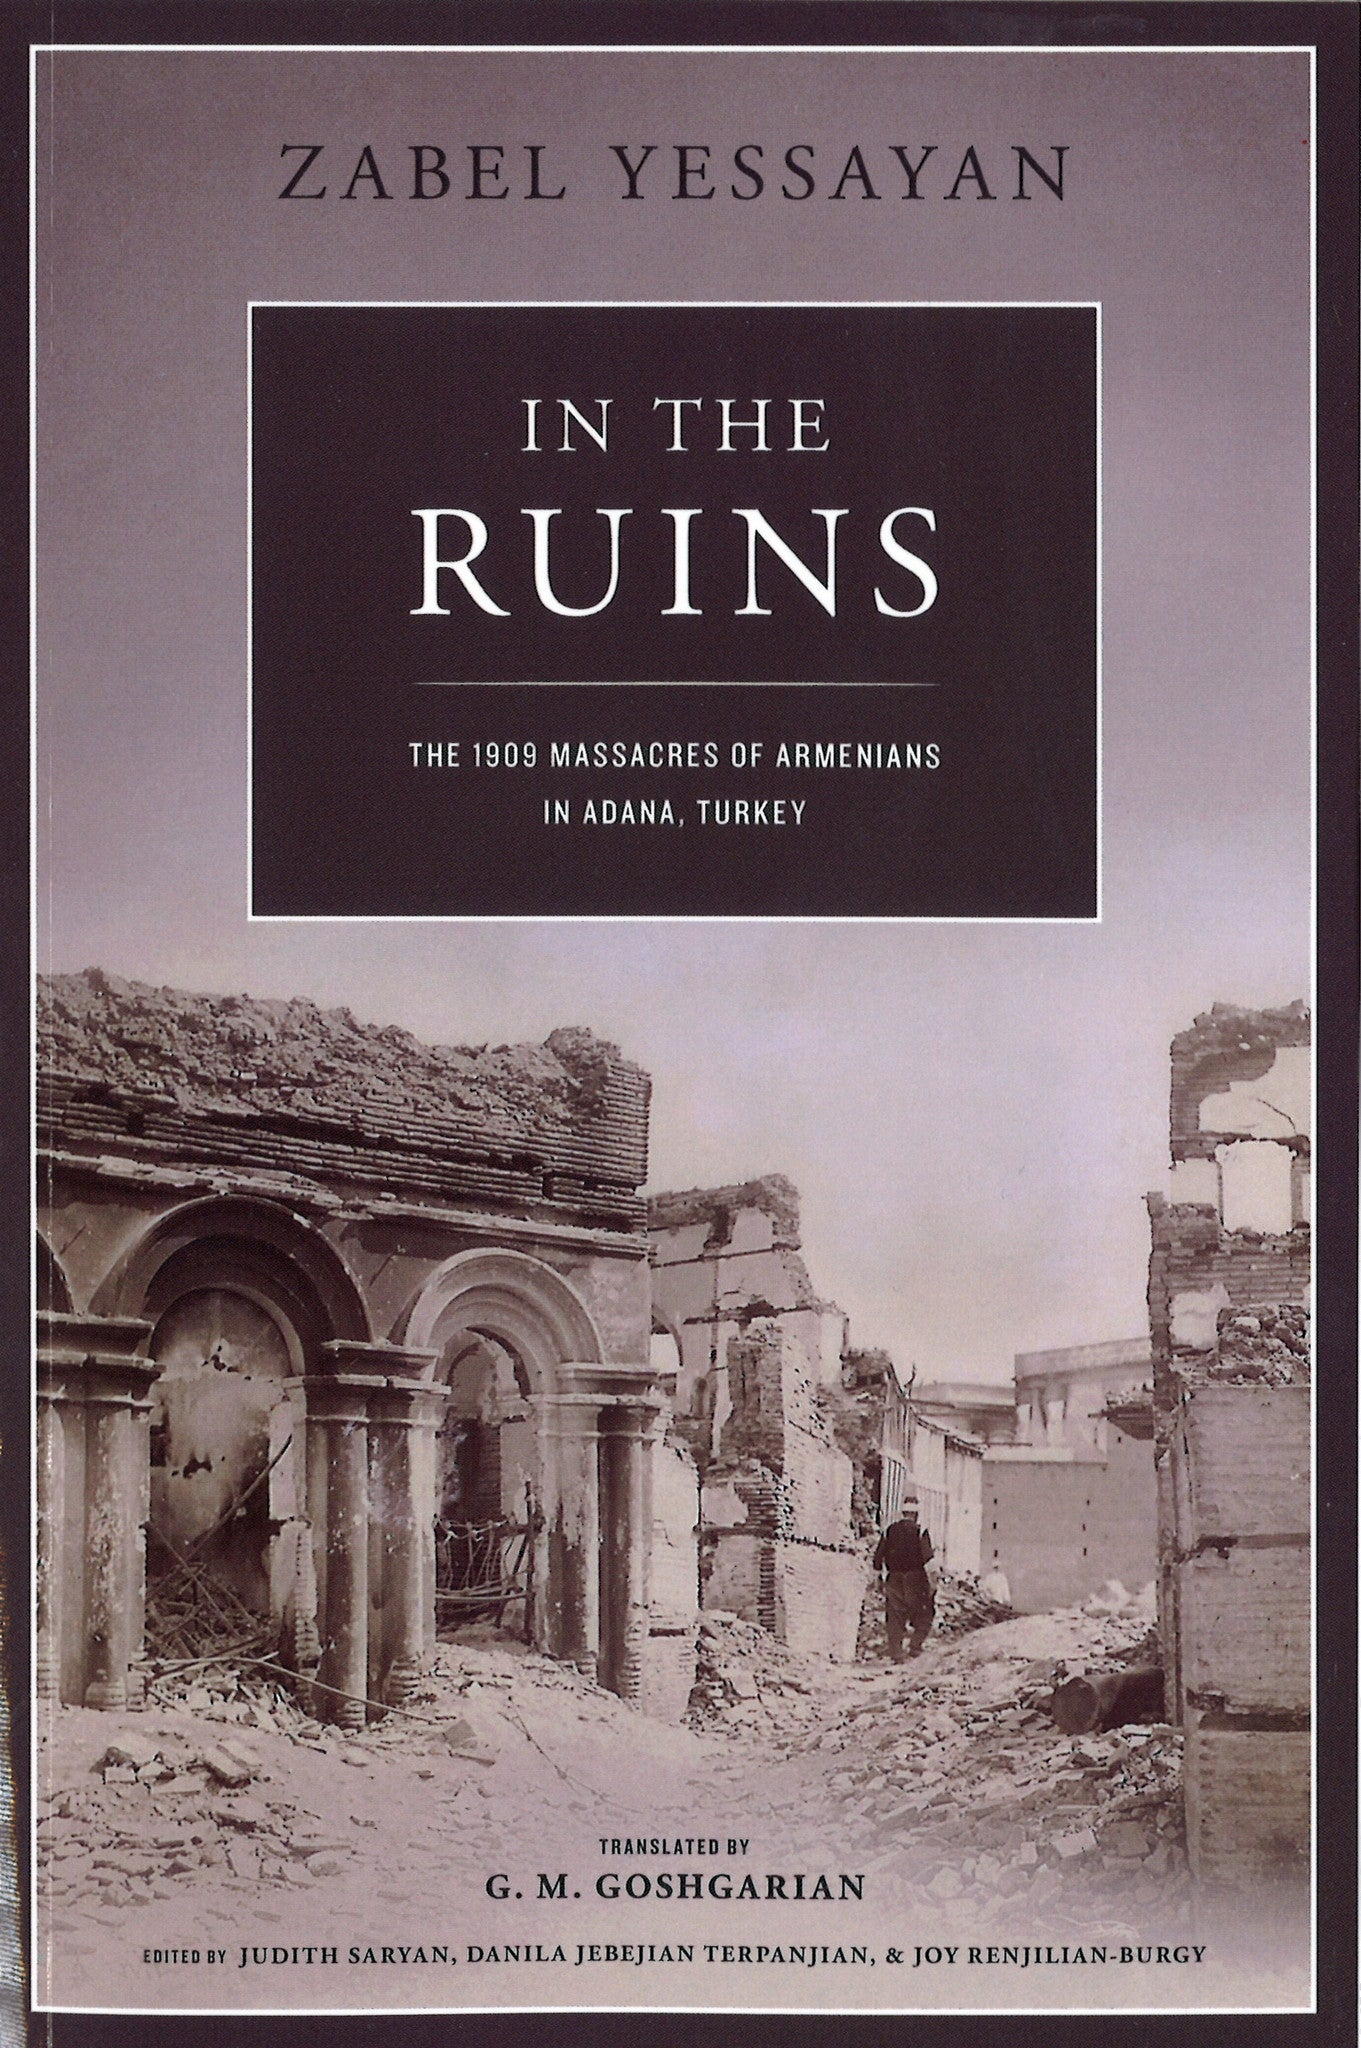 IN THE RUINS: The 1909 Massacres of Armenians in Adana, Turkey